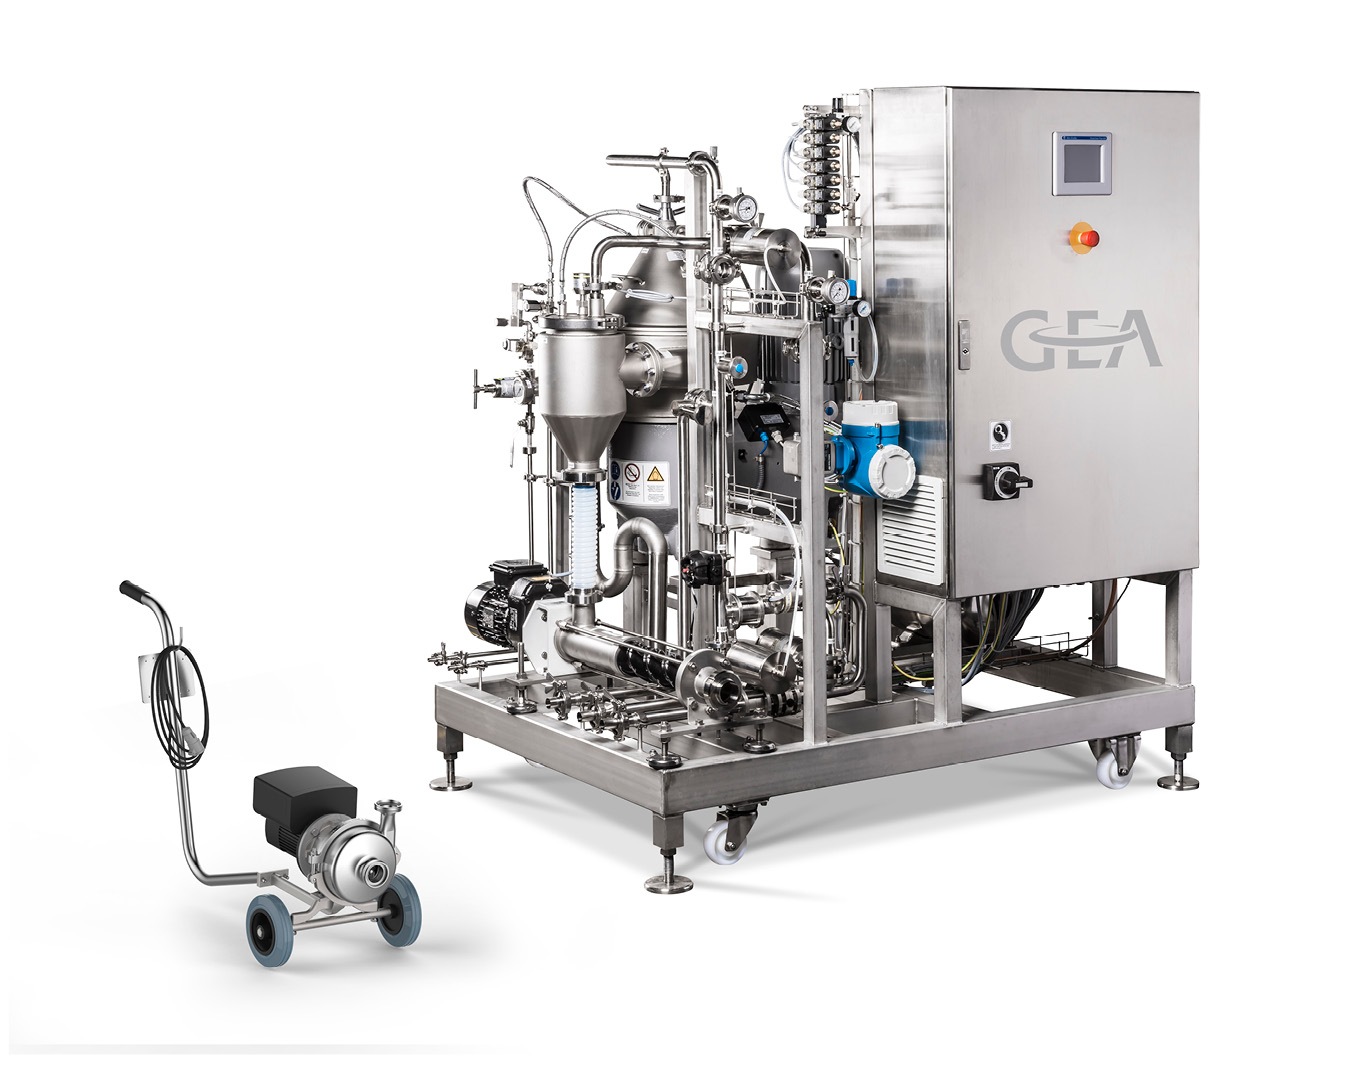 """Product picture of GEA """"plug& win"""" centrifuge skid for craft brewers with GEA Hilge HYGIA"""